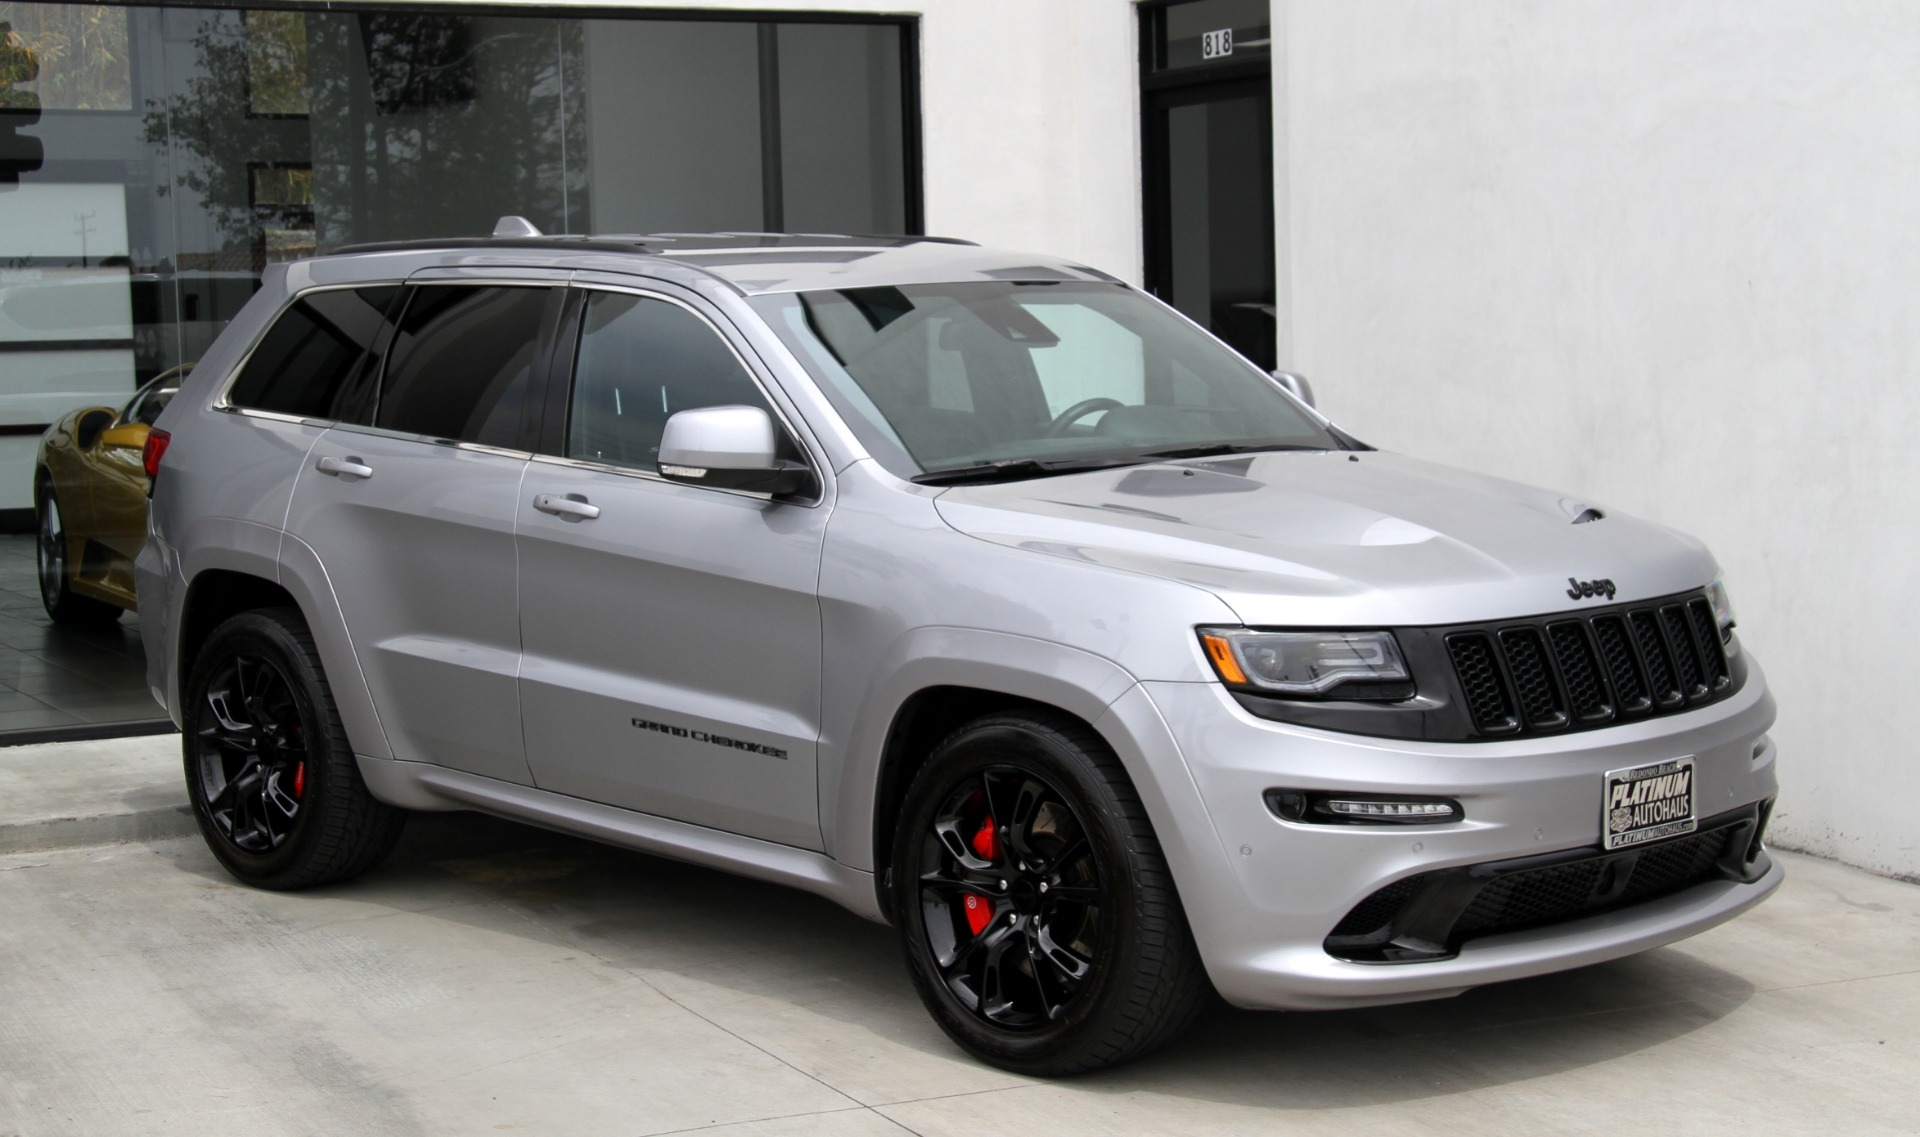 Jeep Dealer Near Me >> 2015 Jeep Grand Cherokee SRT Stock # 6100A for sale near ...